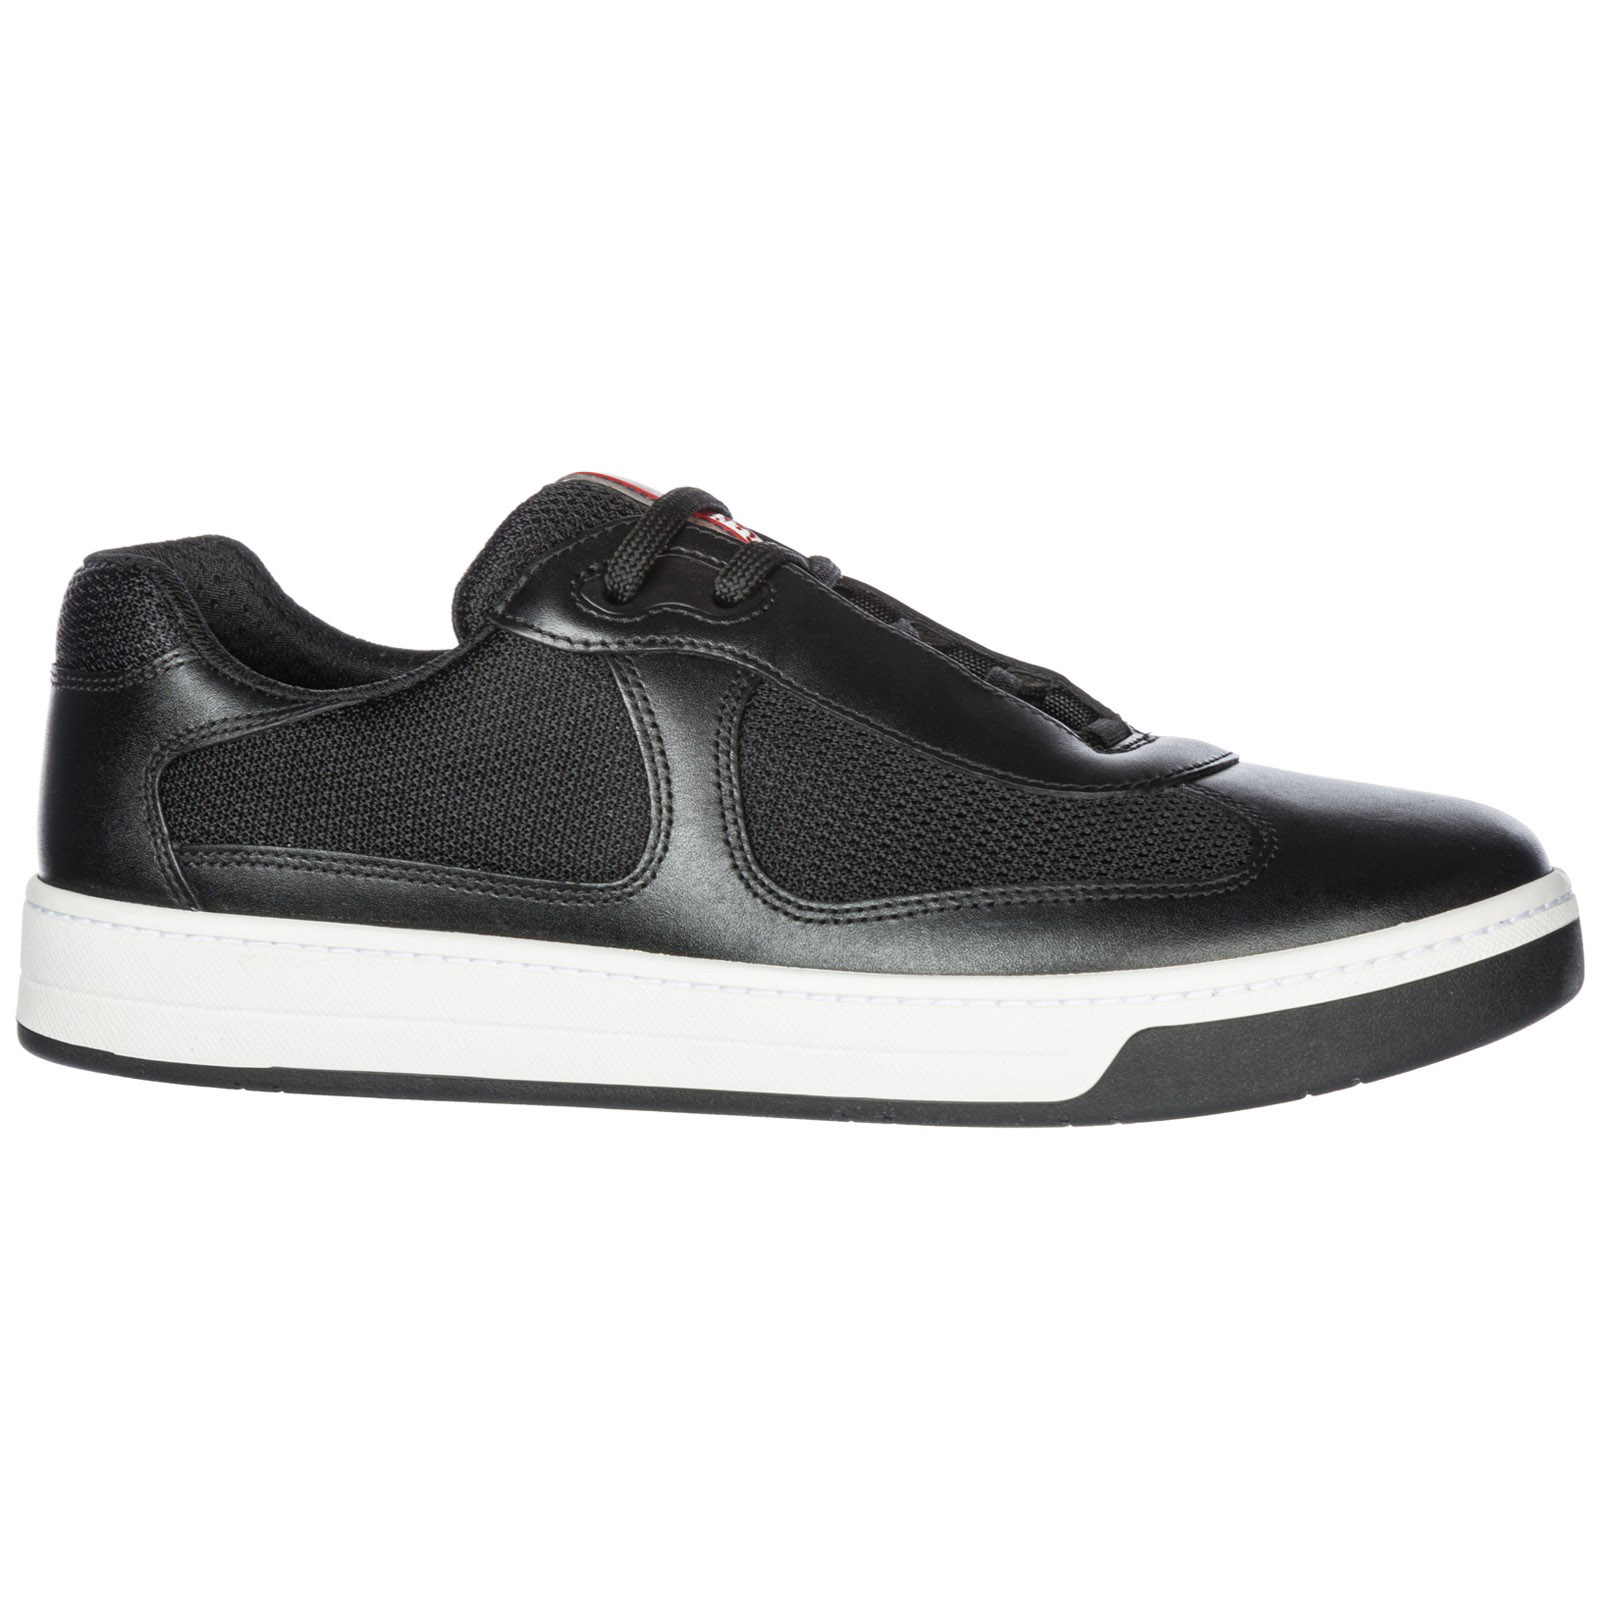 ... Chaussures baskets sneakers homme en cuir america s cup ... 92e784c29a8